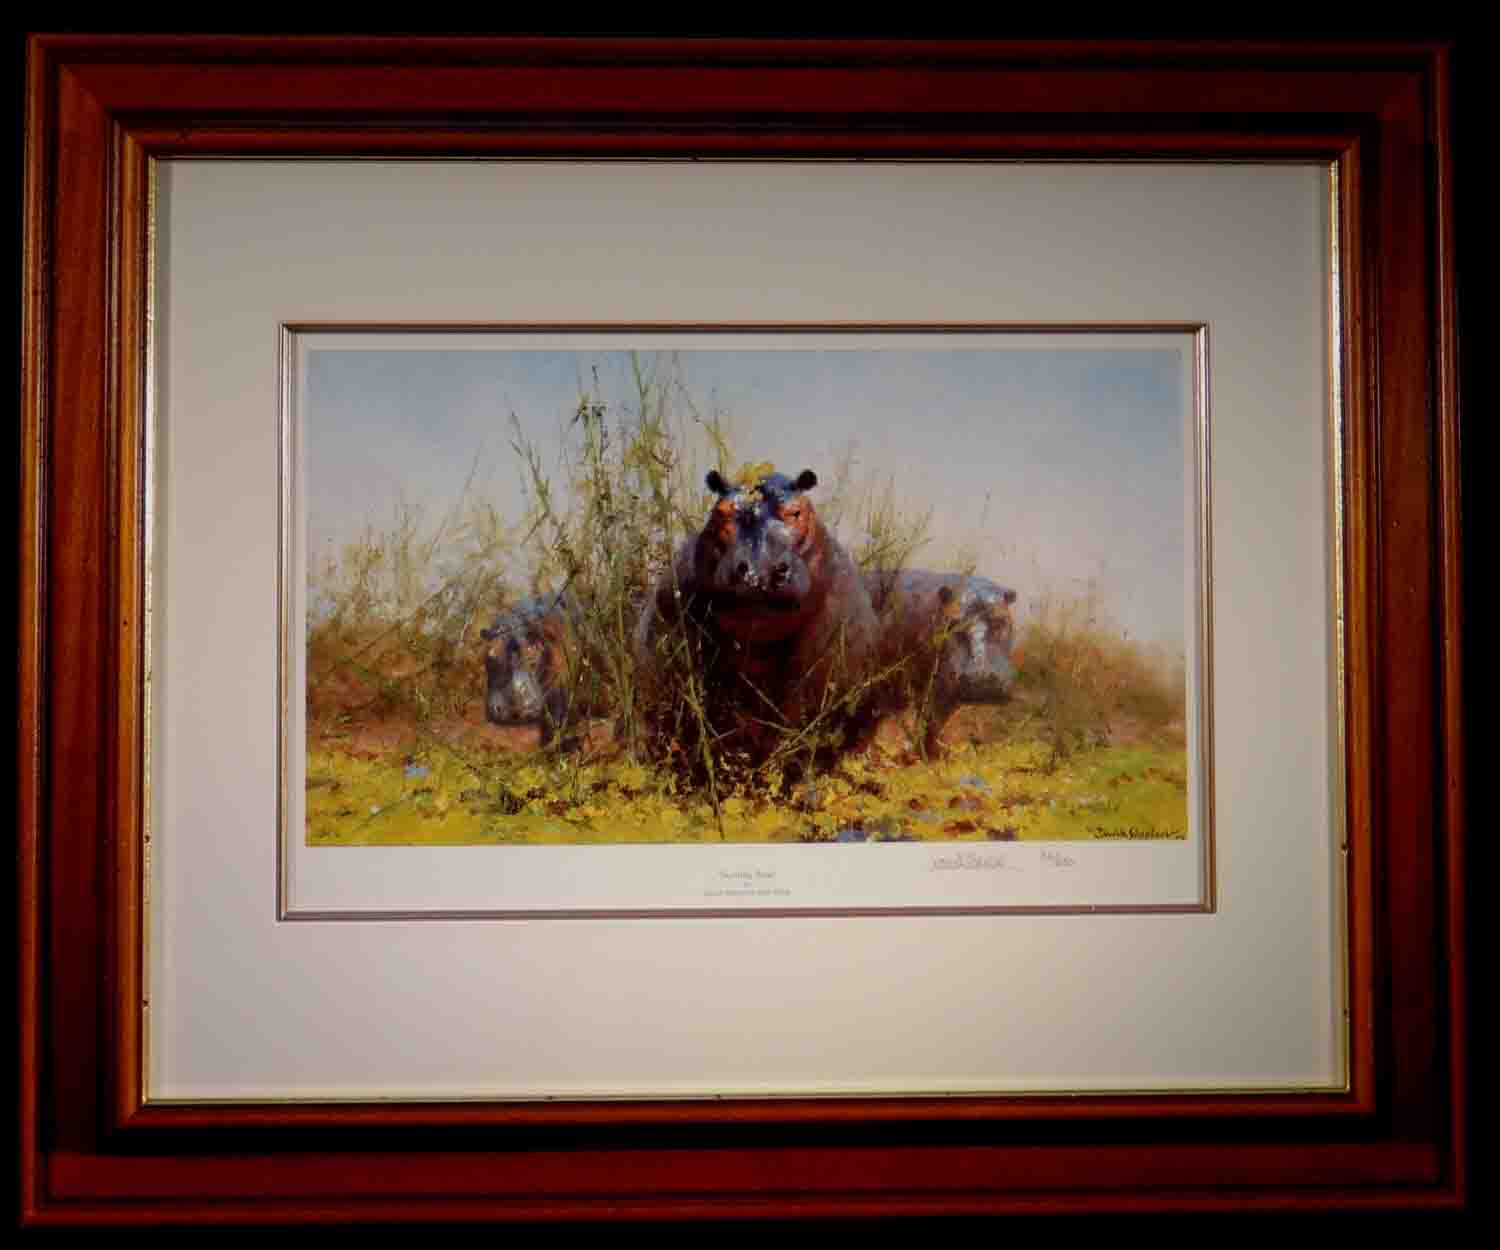 david shepherd, Sunday Best, signed limited edition print